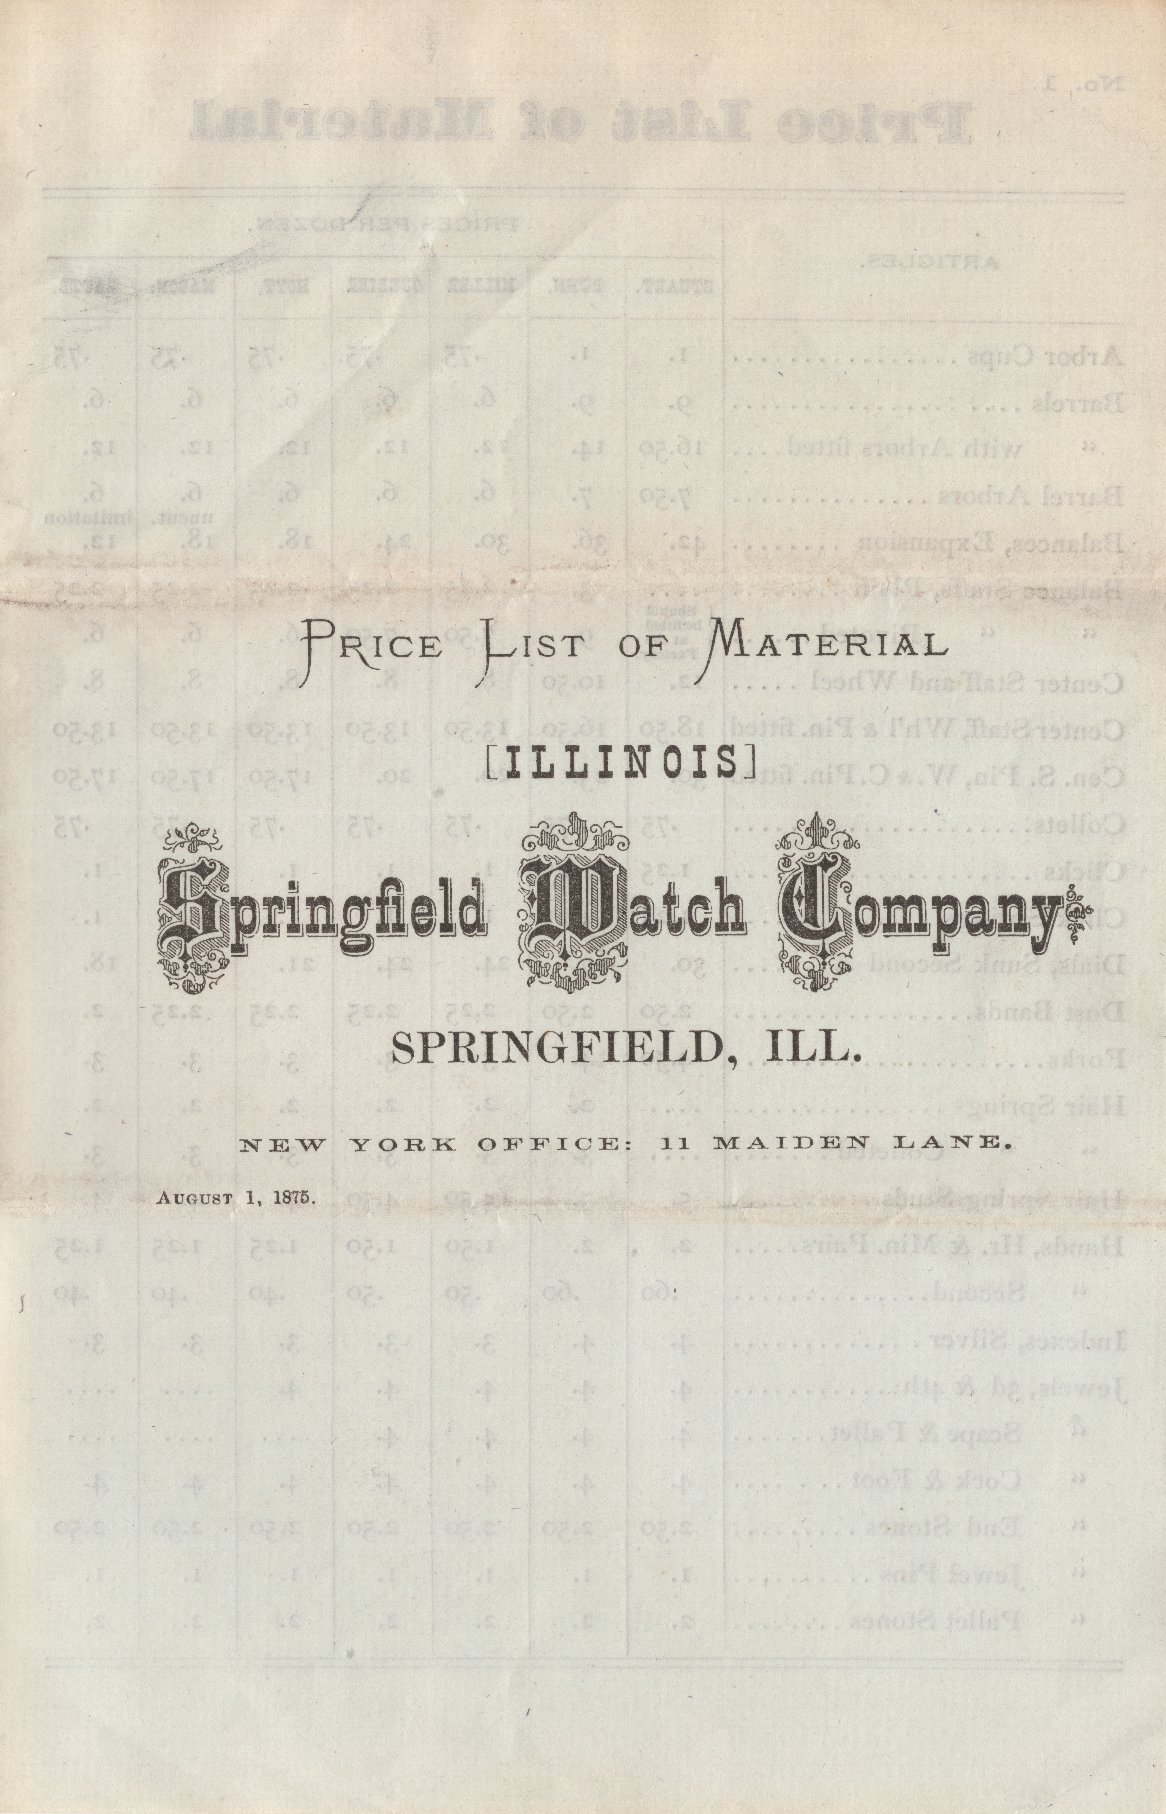 Price List of Material: Illinois Springfield Watch Company Cover Image